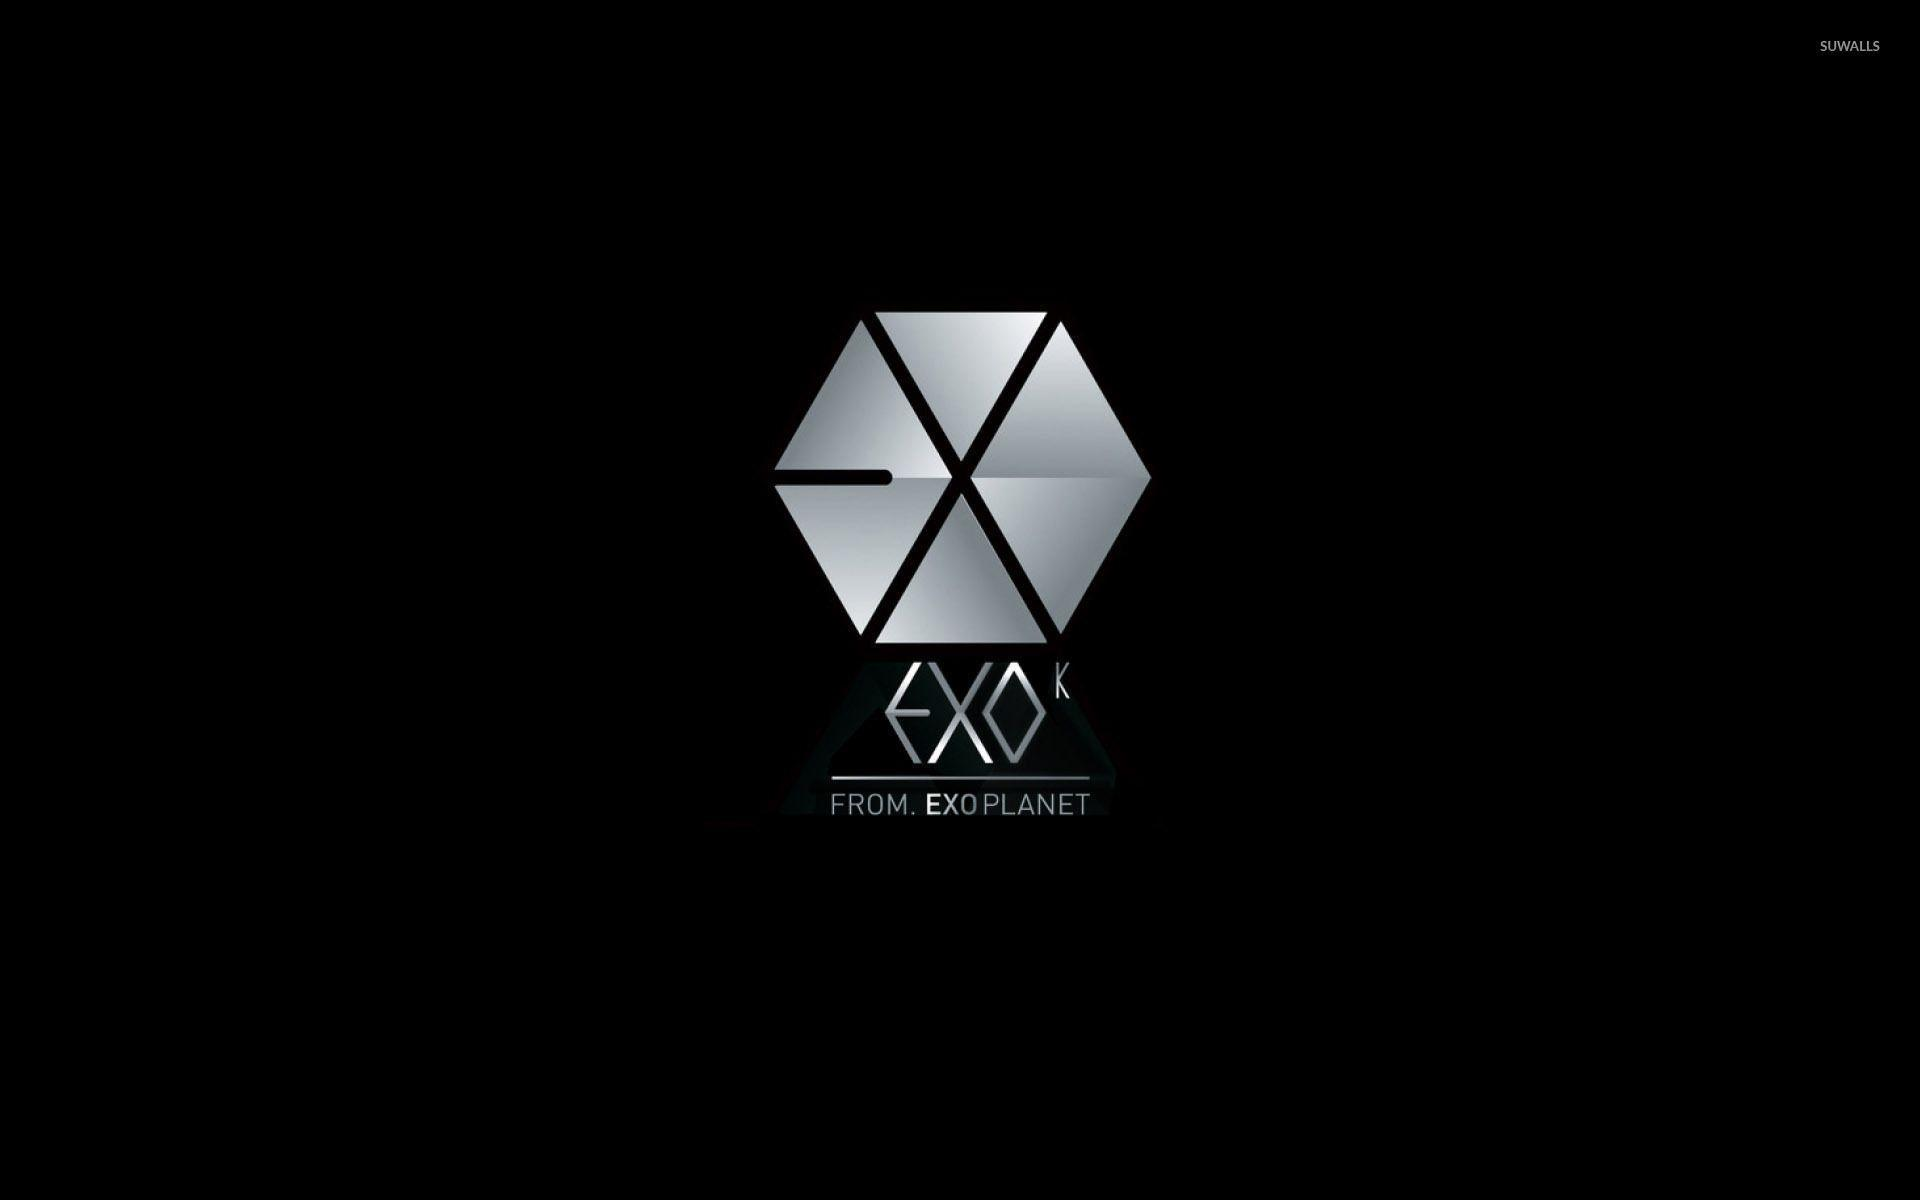 exo wallpapers wallpaper cave